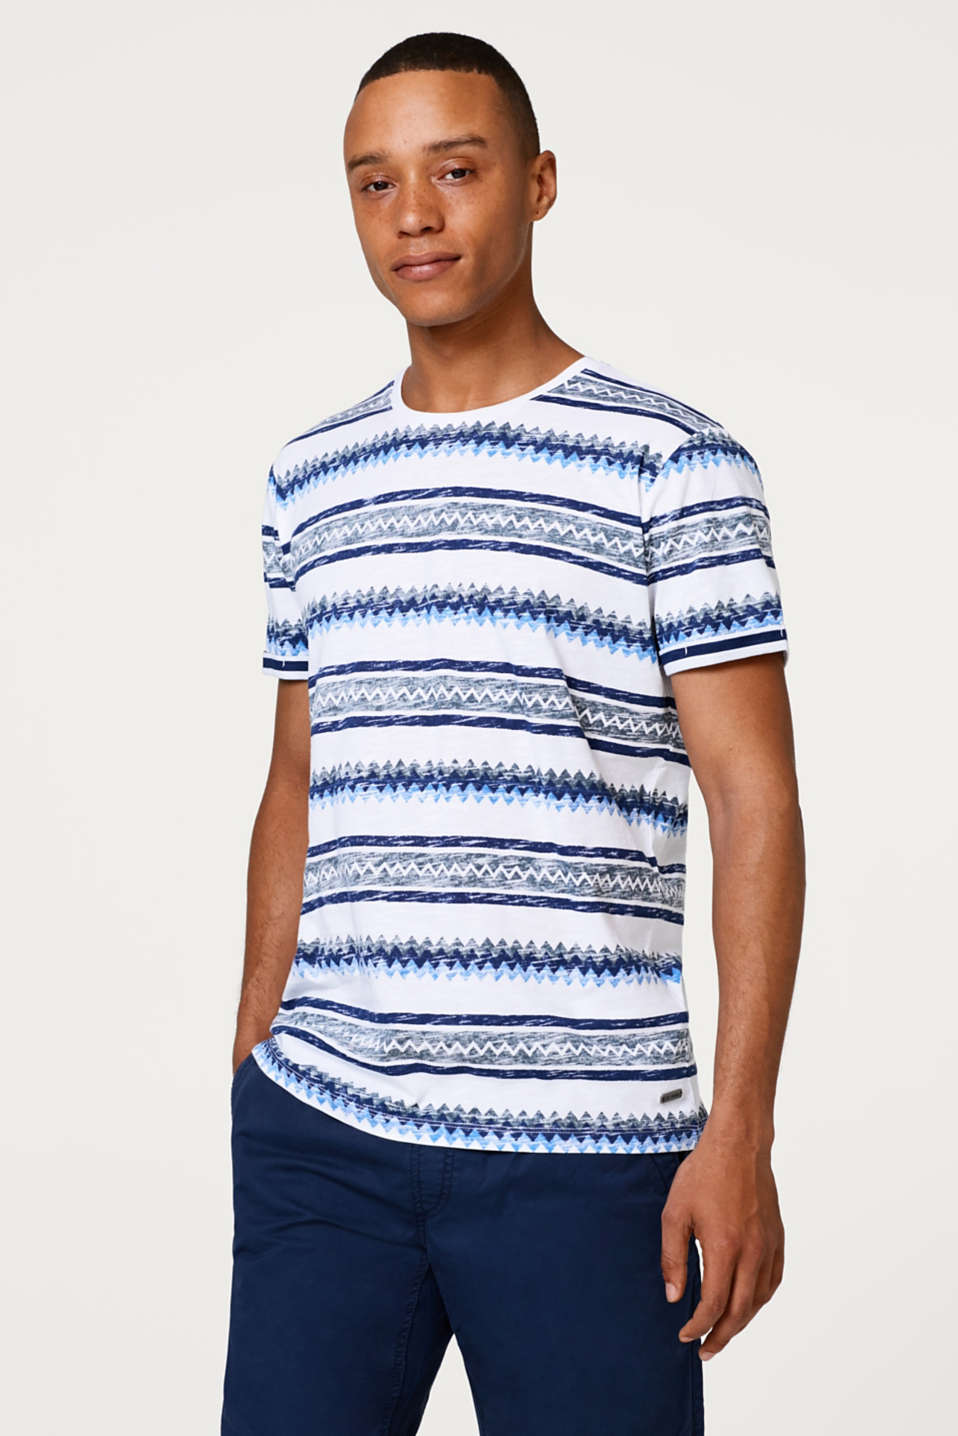 edc - T-shirt with a zigzag pattern, in slub jersey